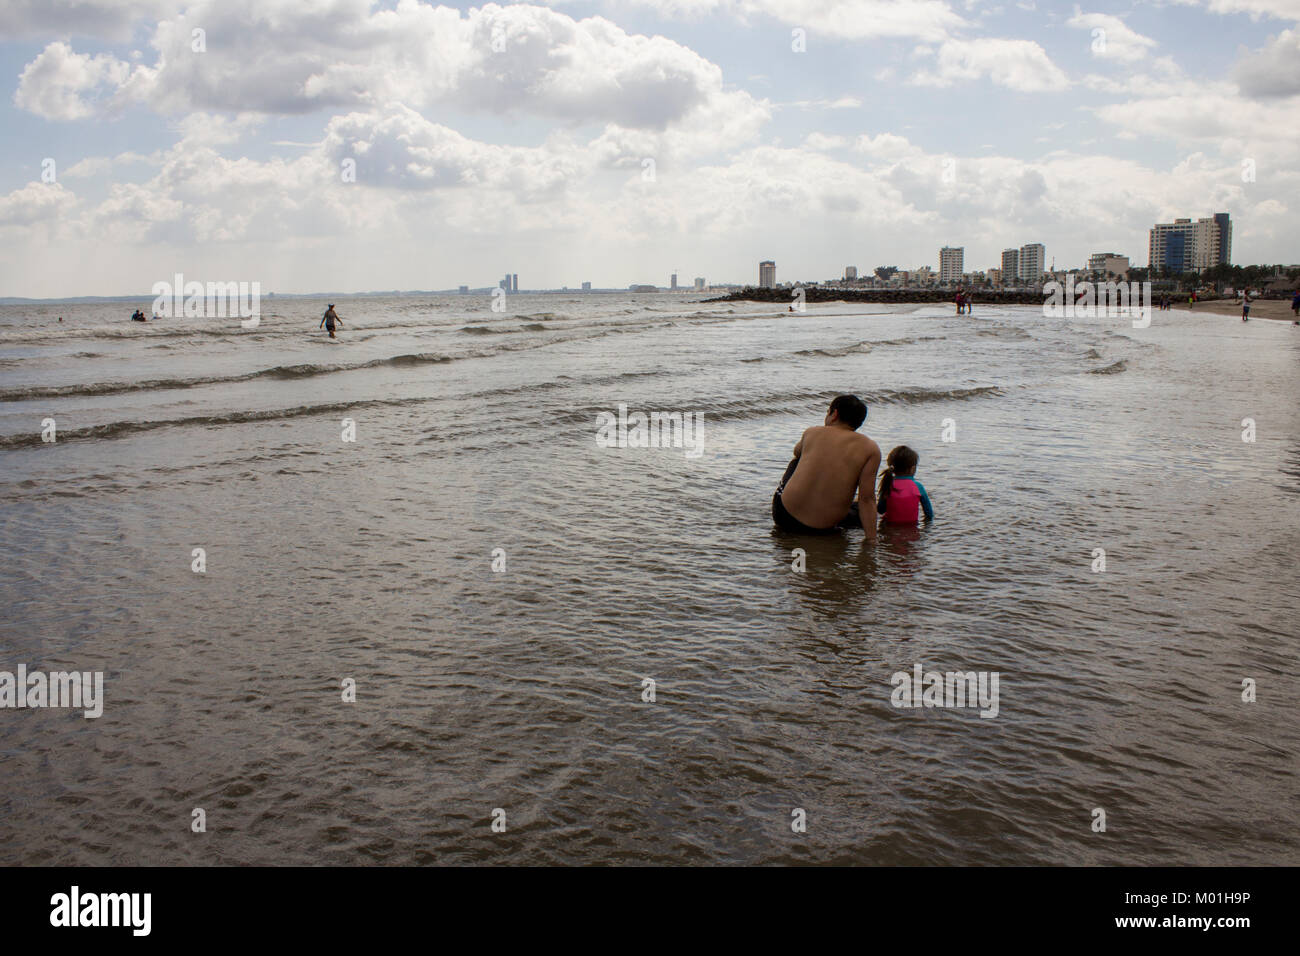 Man and girl in the water at the beach - Stock Image